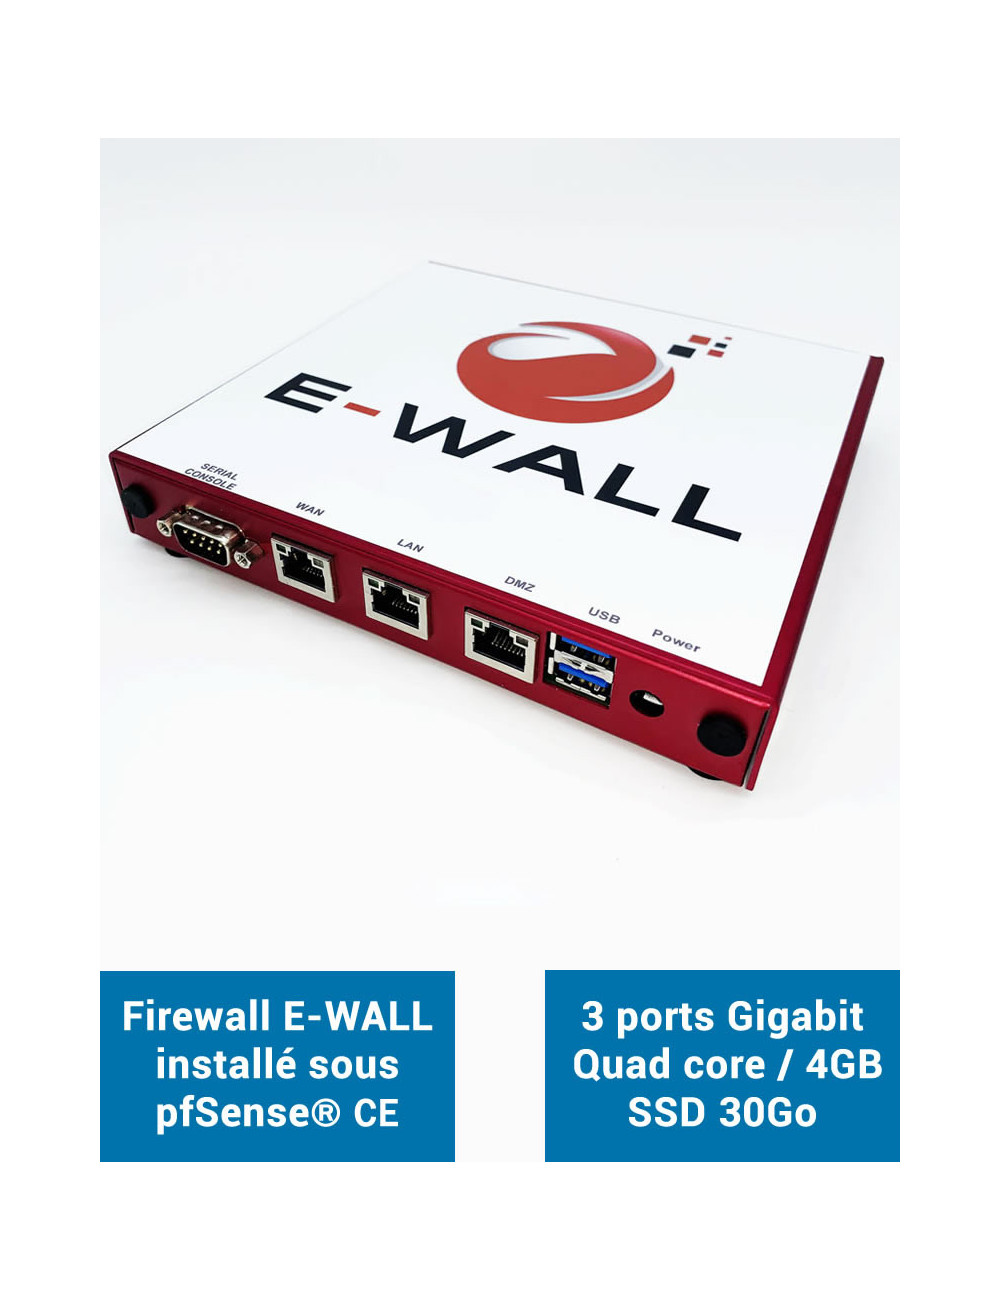 Firewall E-WALL AP234 under pfSense® CE 3 ports 4GB SSD 30GB